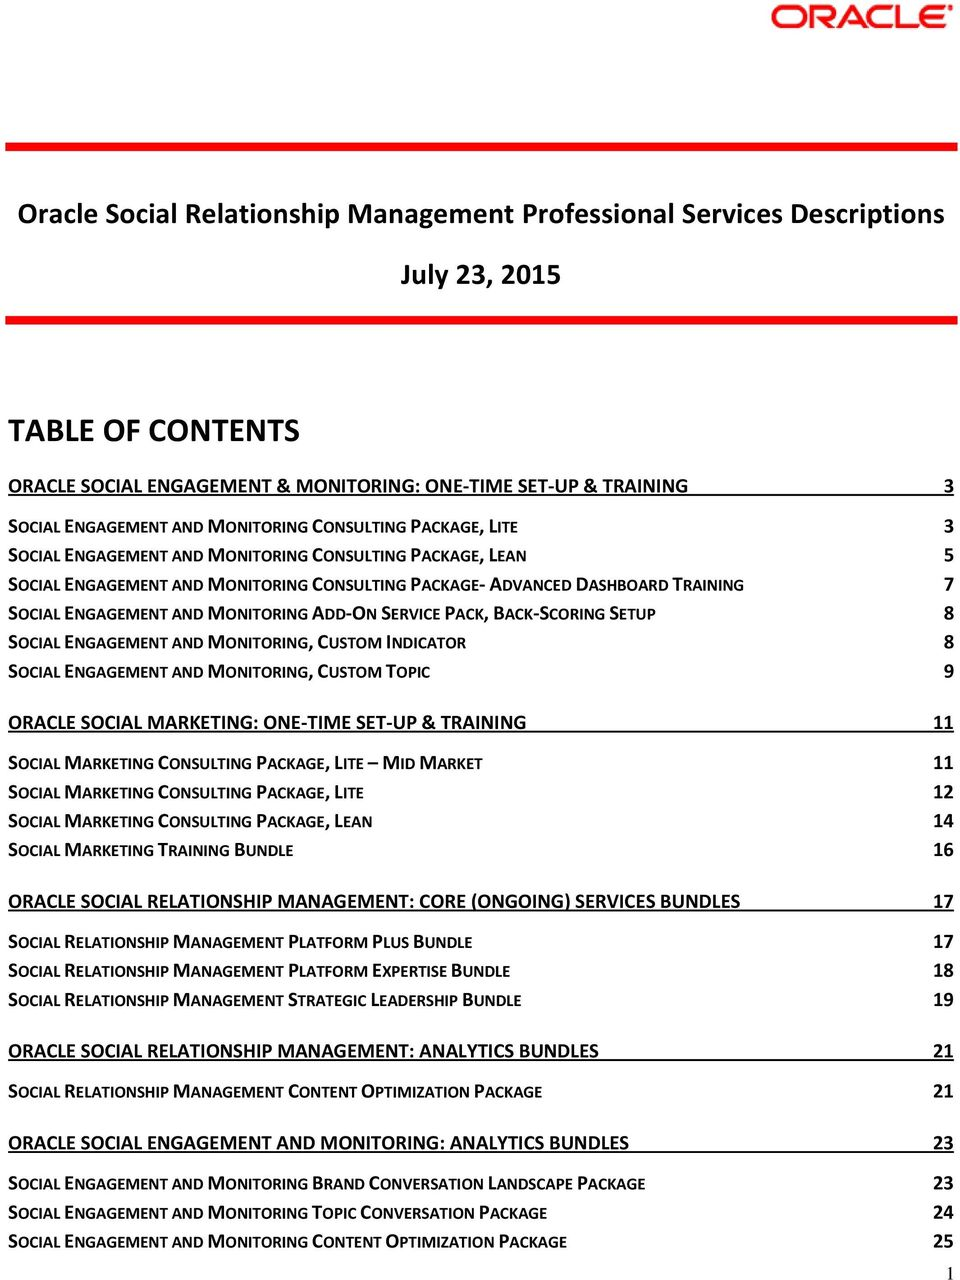 AND MONITORING ADD-ON SERVICE PACK, BACK-SCORING SETUP 8 SOCIAL ENGAGEMENT AND MONITORING, CUSTOM INDICATOR 8 SOCIAL ENGAGEMENT AND MONITORING, CUSTOM TOPIC 9 ORACLE SOCIAL MARKETING: ONE-TIME SET-UP